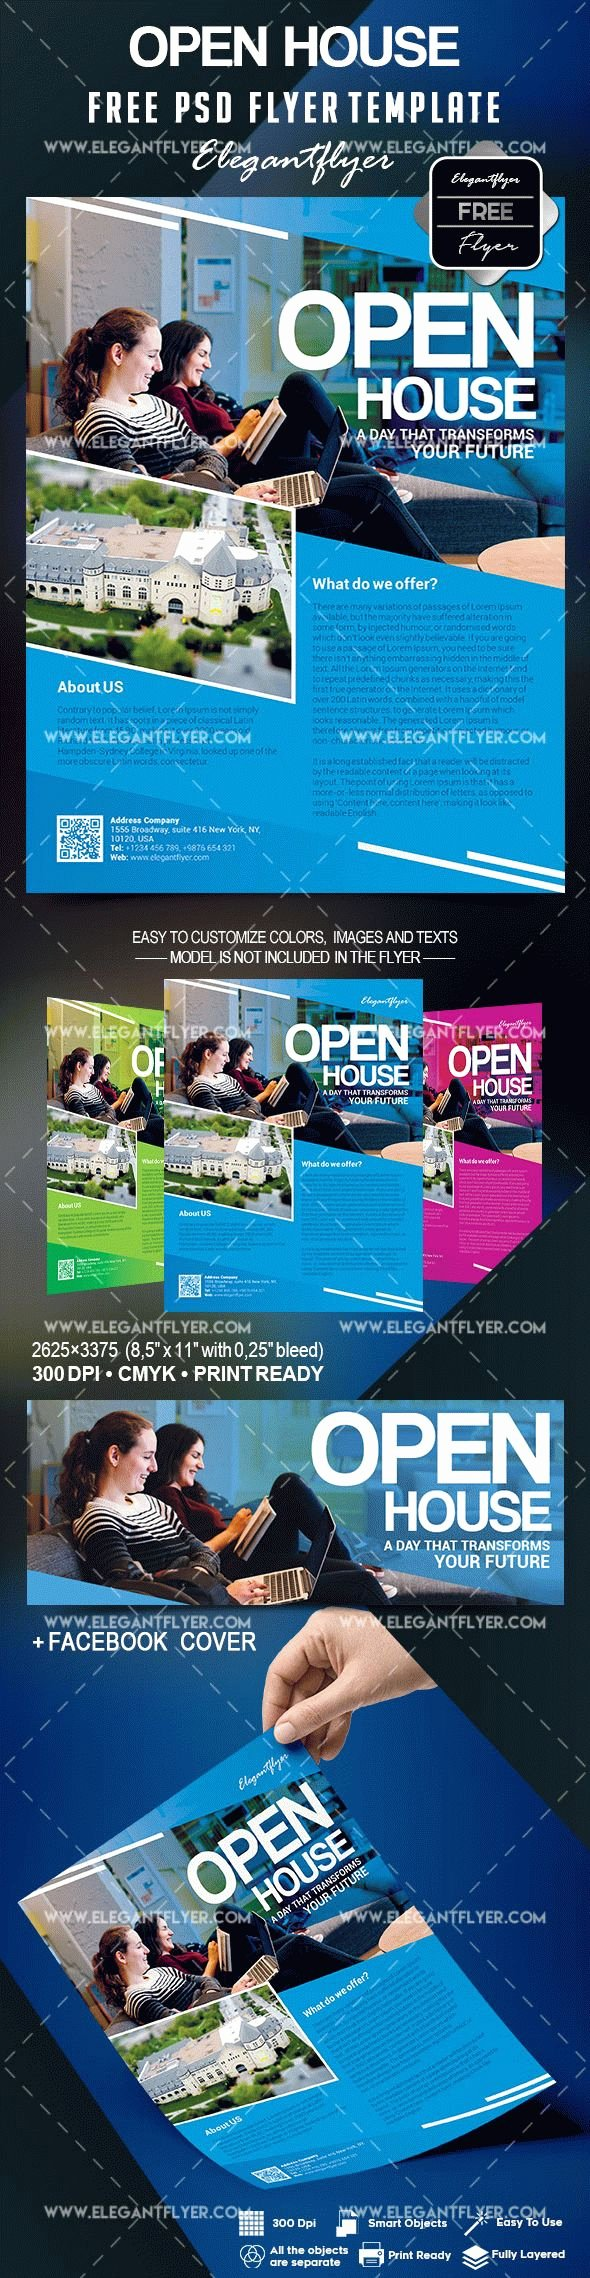 Open House Flyer Template Free – by Elegantflyer